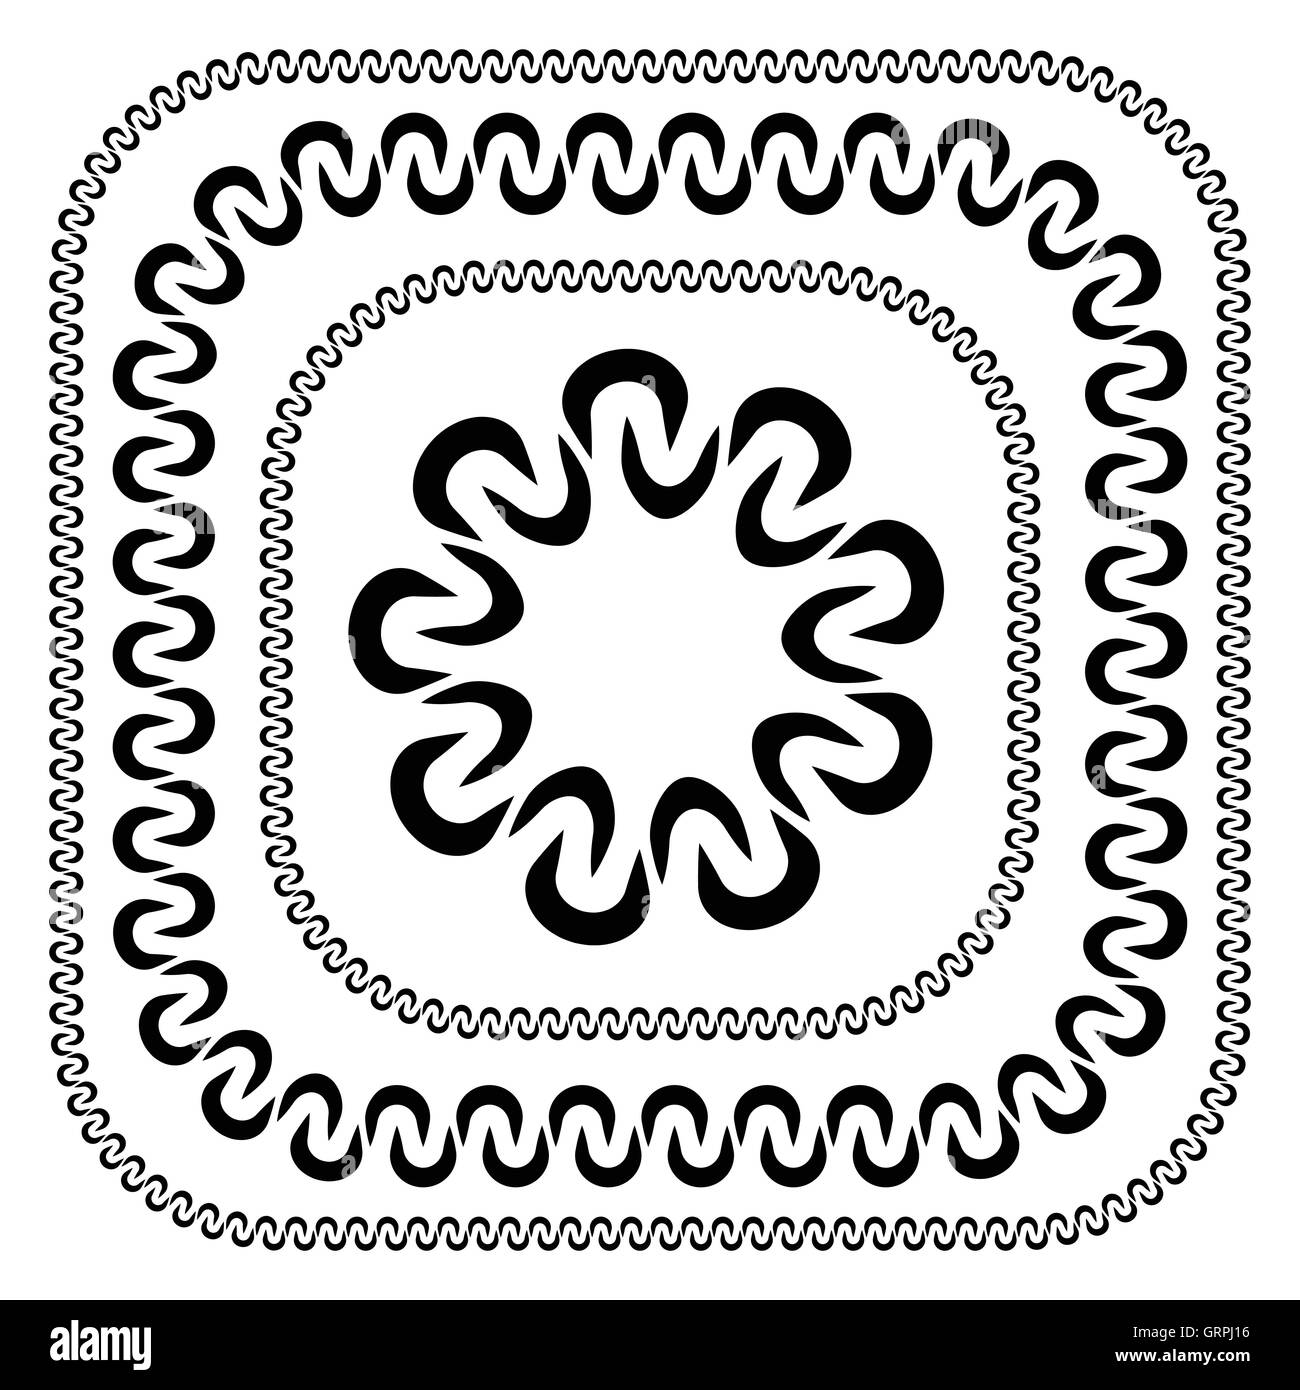 Set of decorative frames in different sizes Stock Vector Art ...